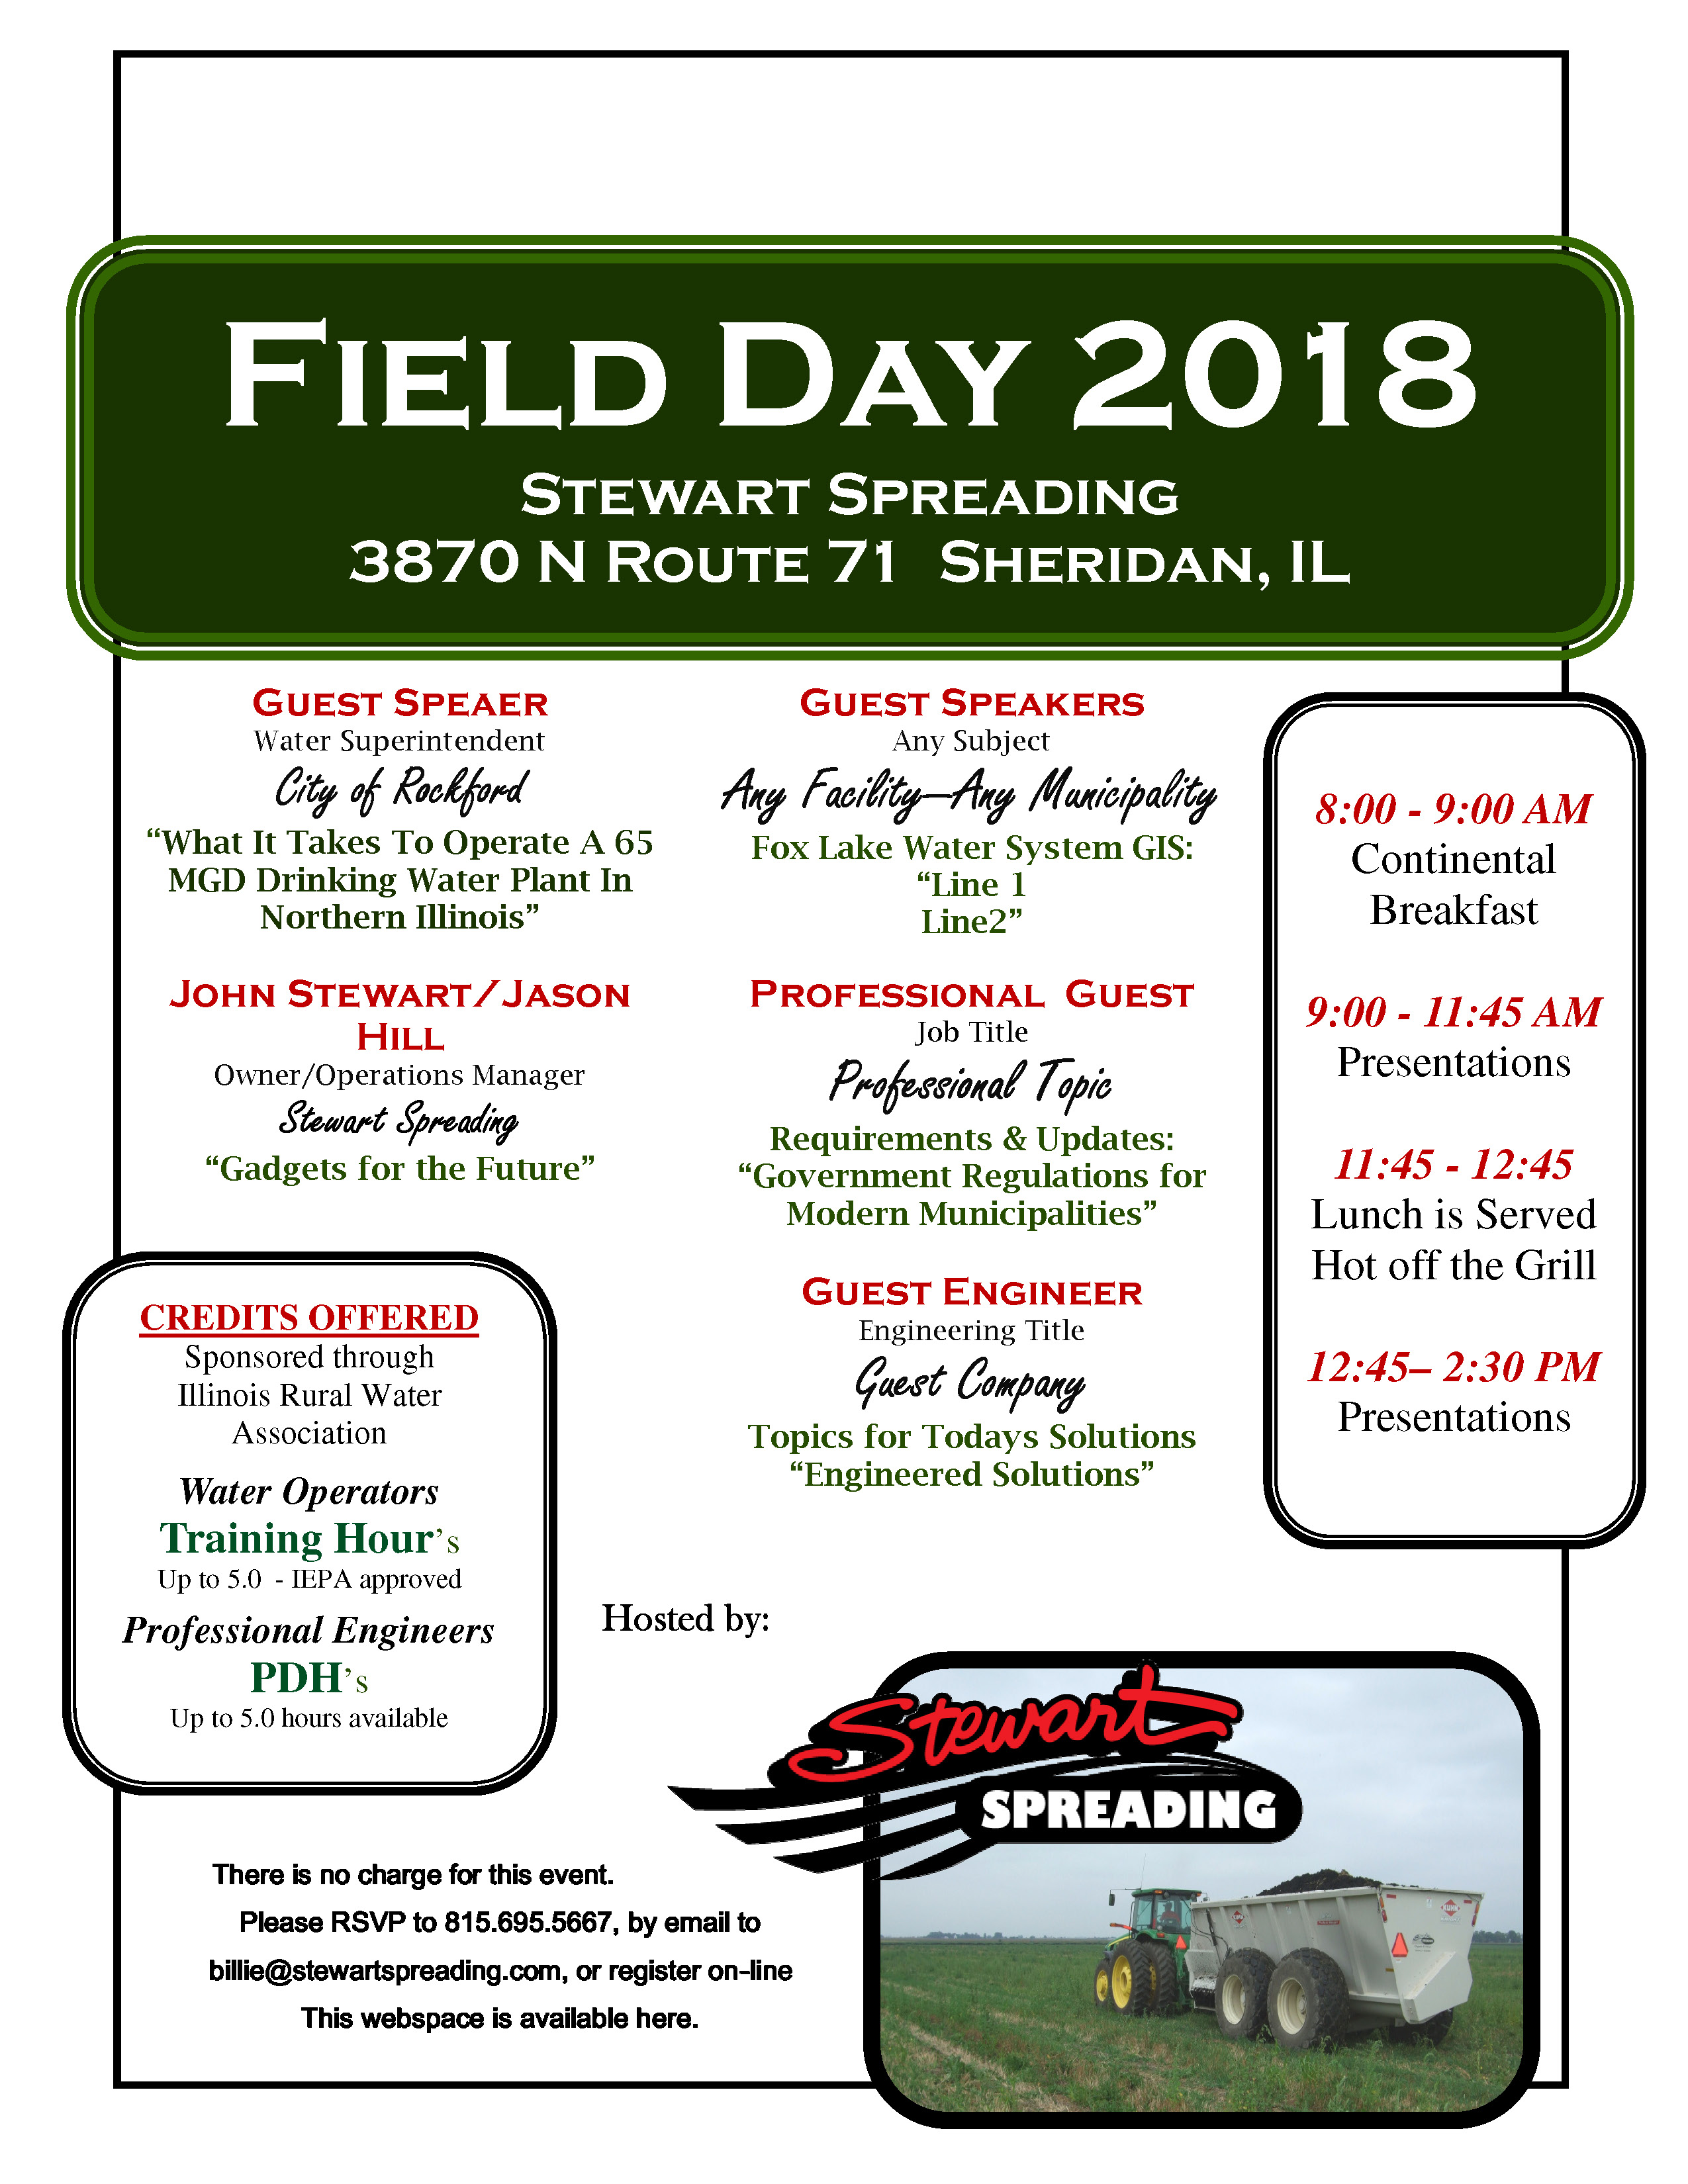 Field Day September 19th 2018